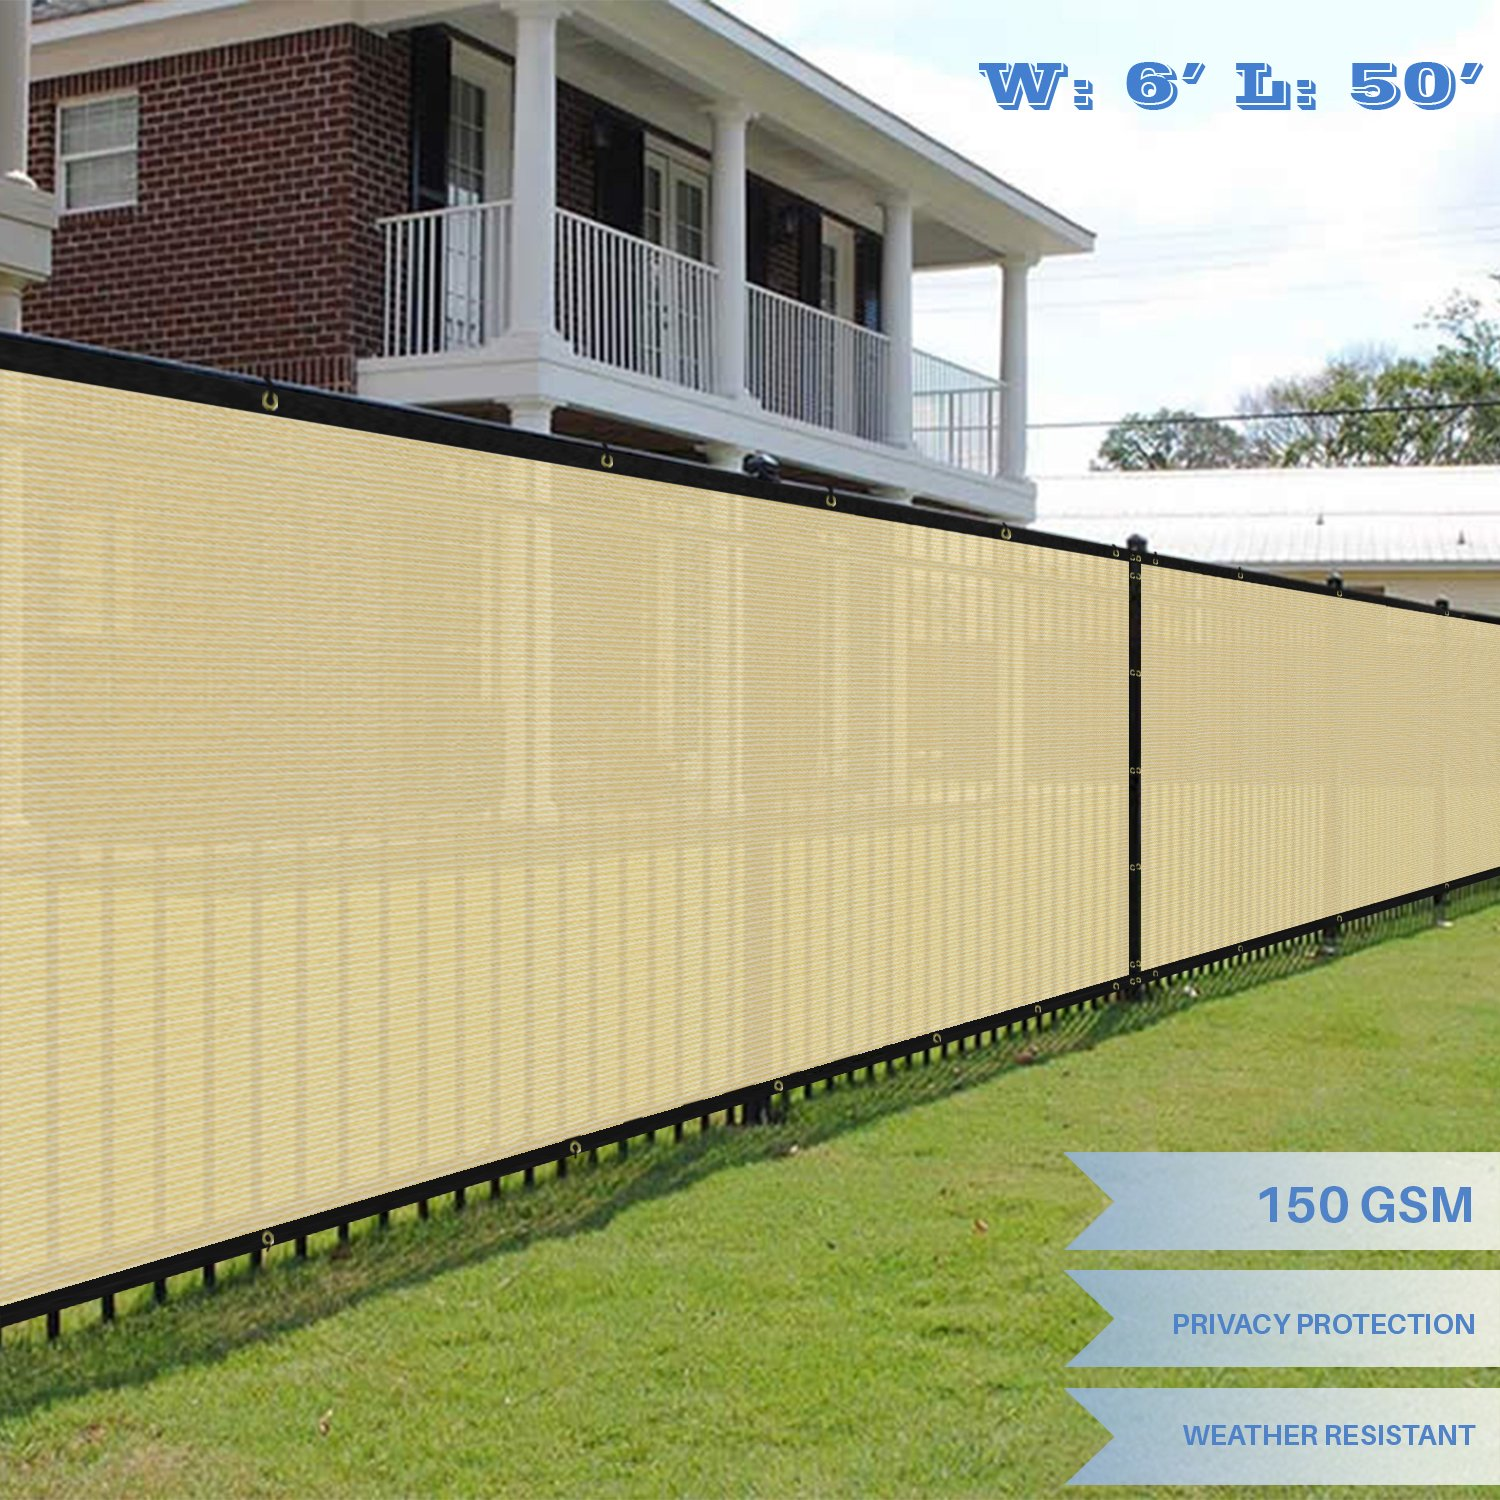 E&K Sunrise 6' x 50'  Commercial Outdoor Backyard Shade Mesh Fabric 3 Years Warranty (Customized Sizes Available) - Set of 1